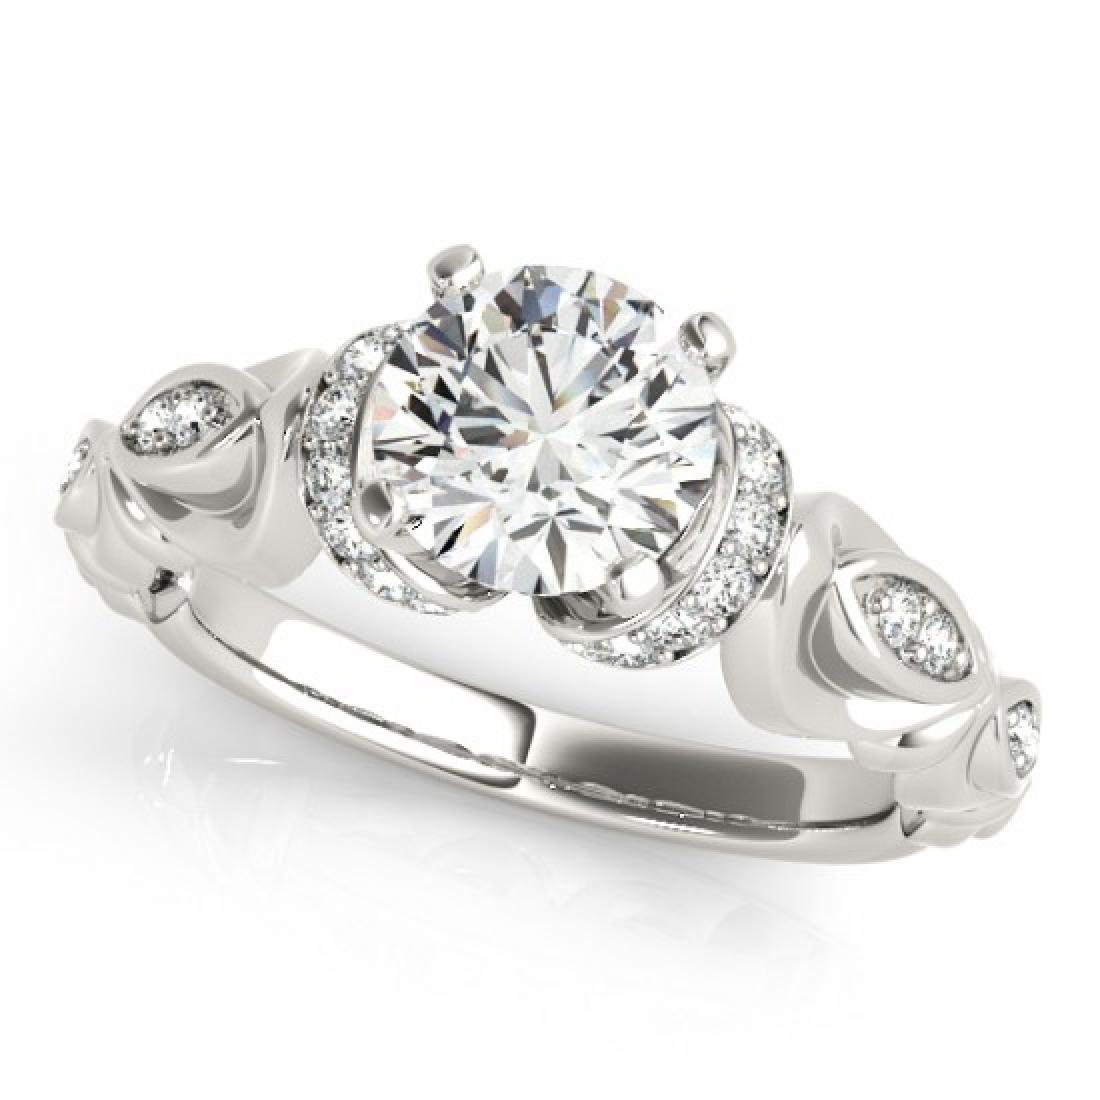 1.2 CTW Certified VS/SI Diamond Solitaire Antique Ring